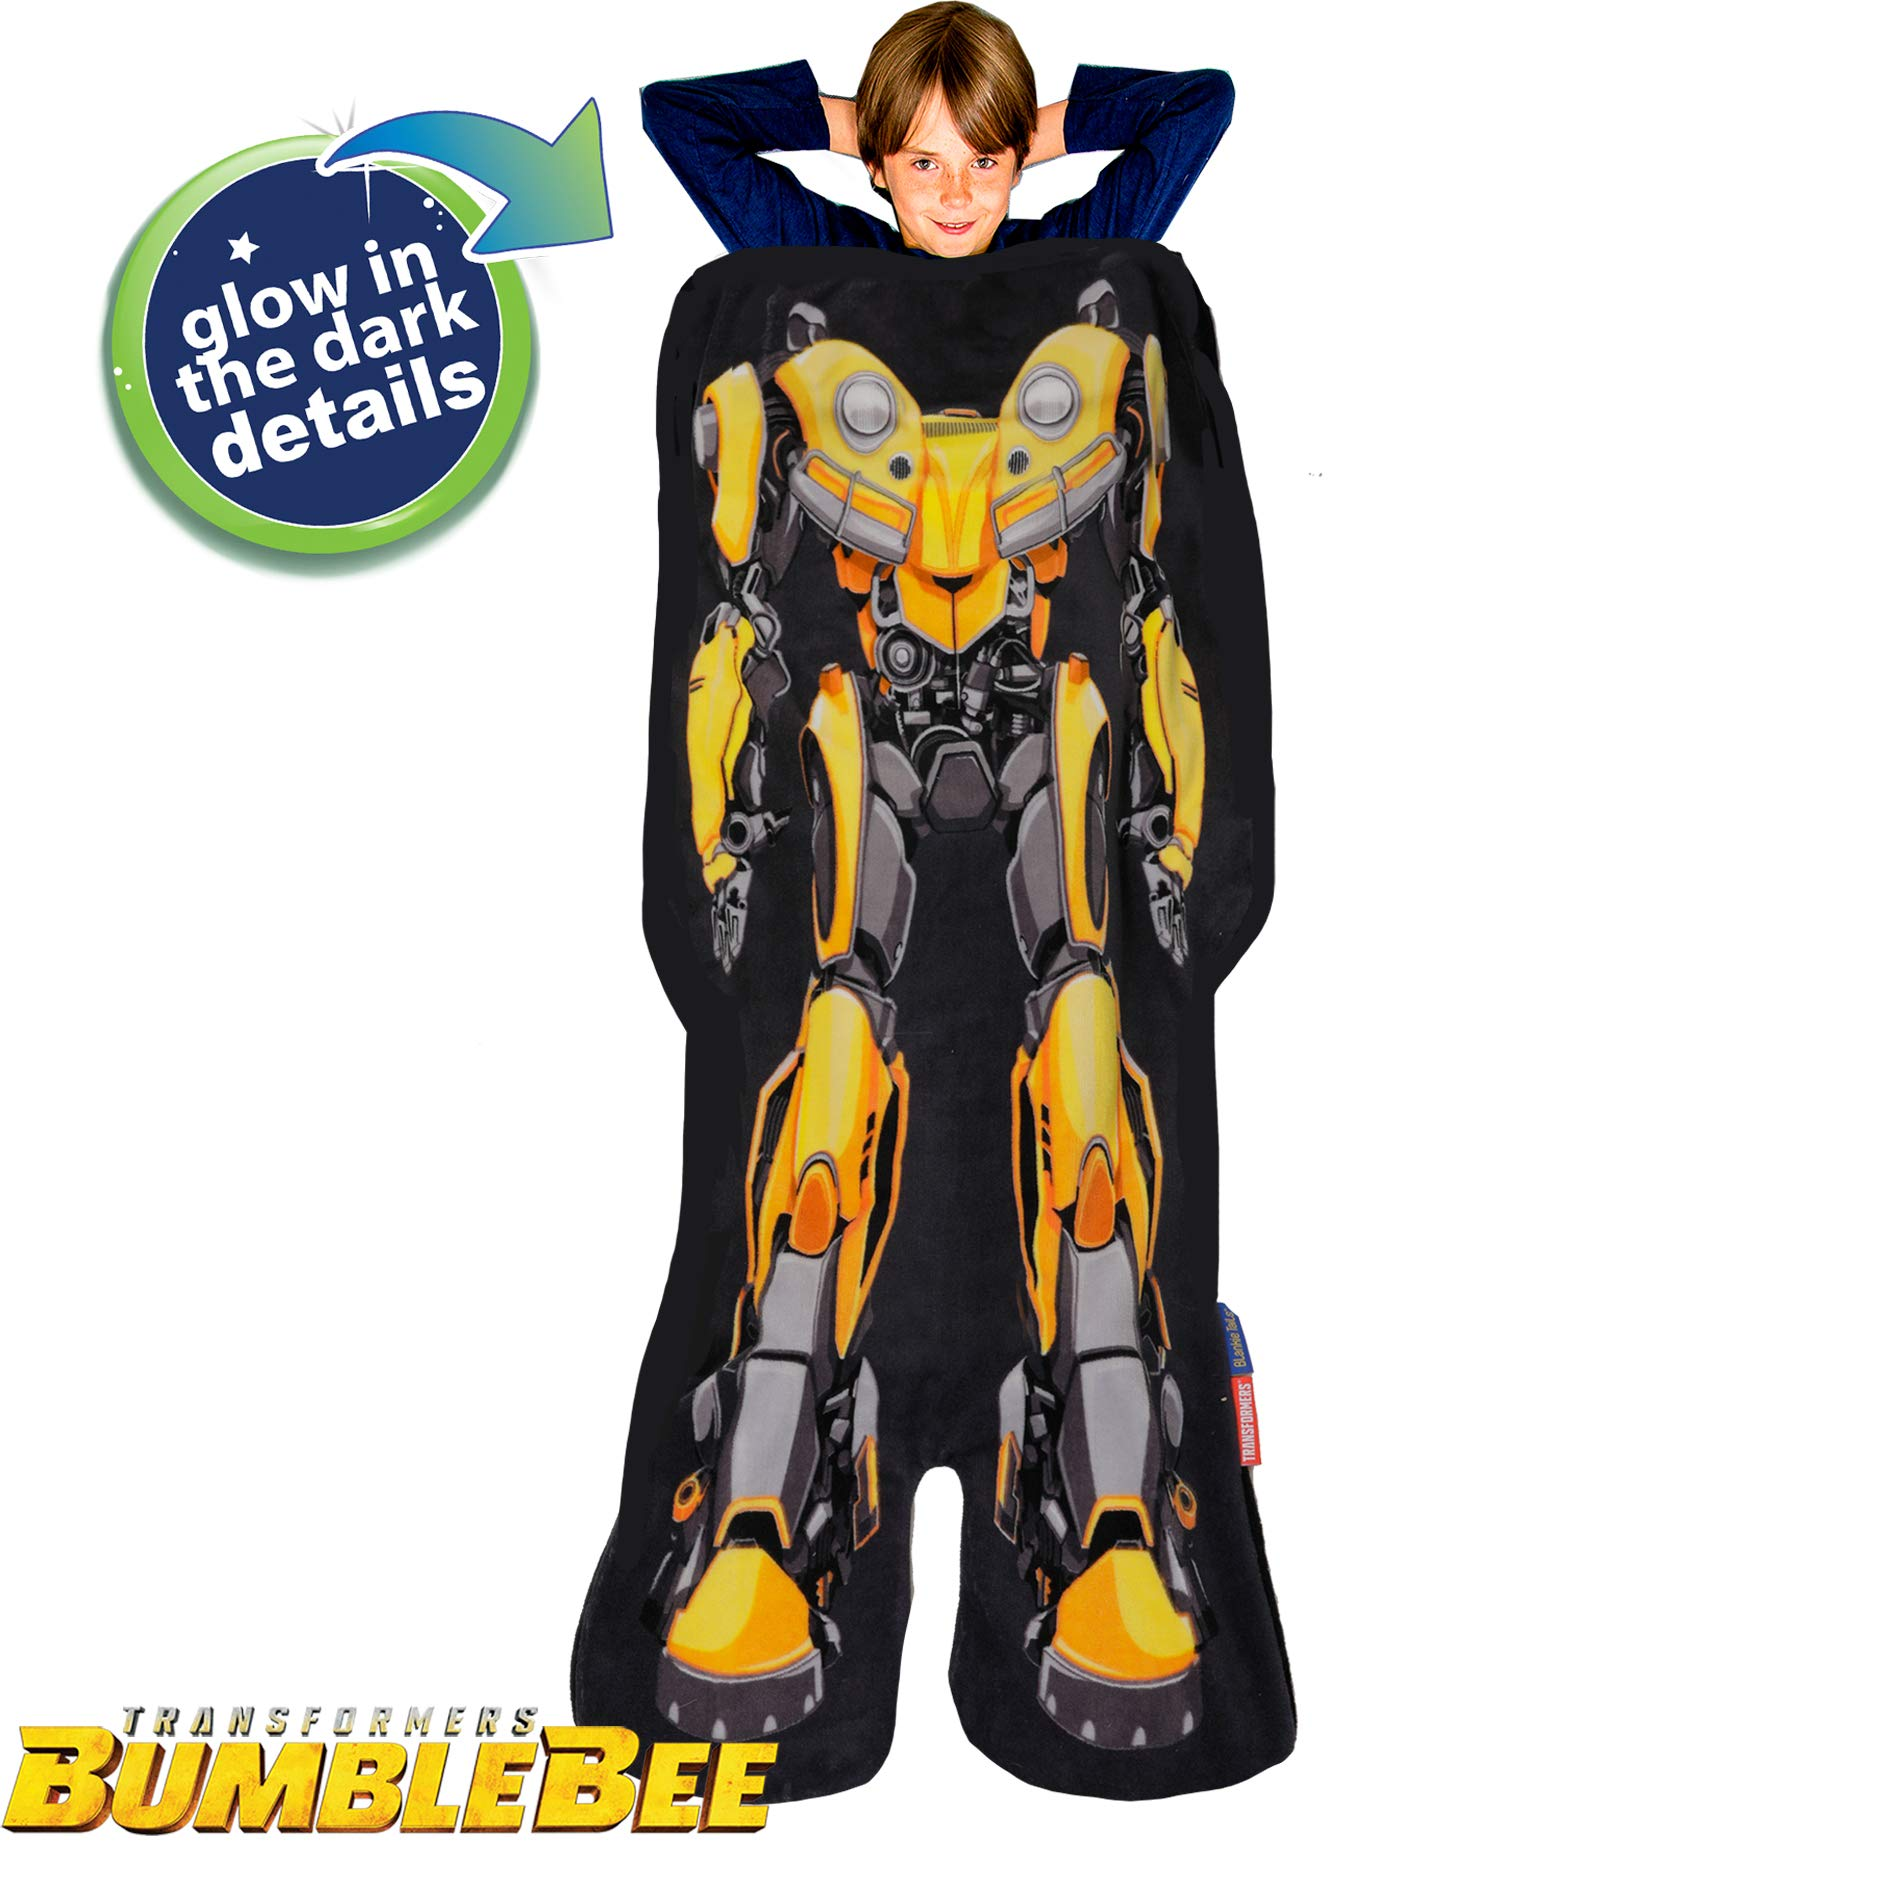 Blankie Tails Transformers Glow in The Dark Bumblebee The Movie Shaped Blanket Super Soft-Double Sided Fleece Sized for Kids- Cozy Wearable Blanket_Make a Great Gift